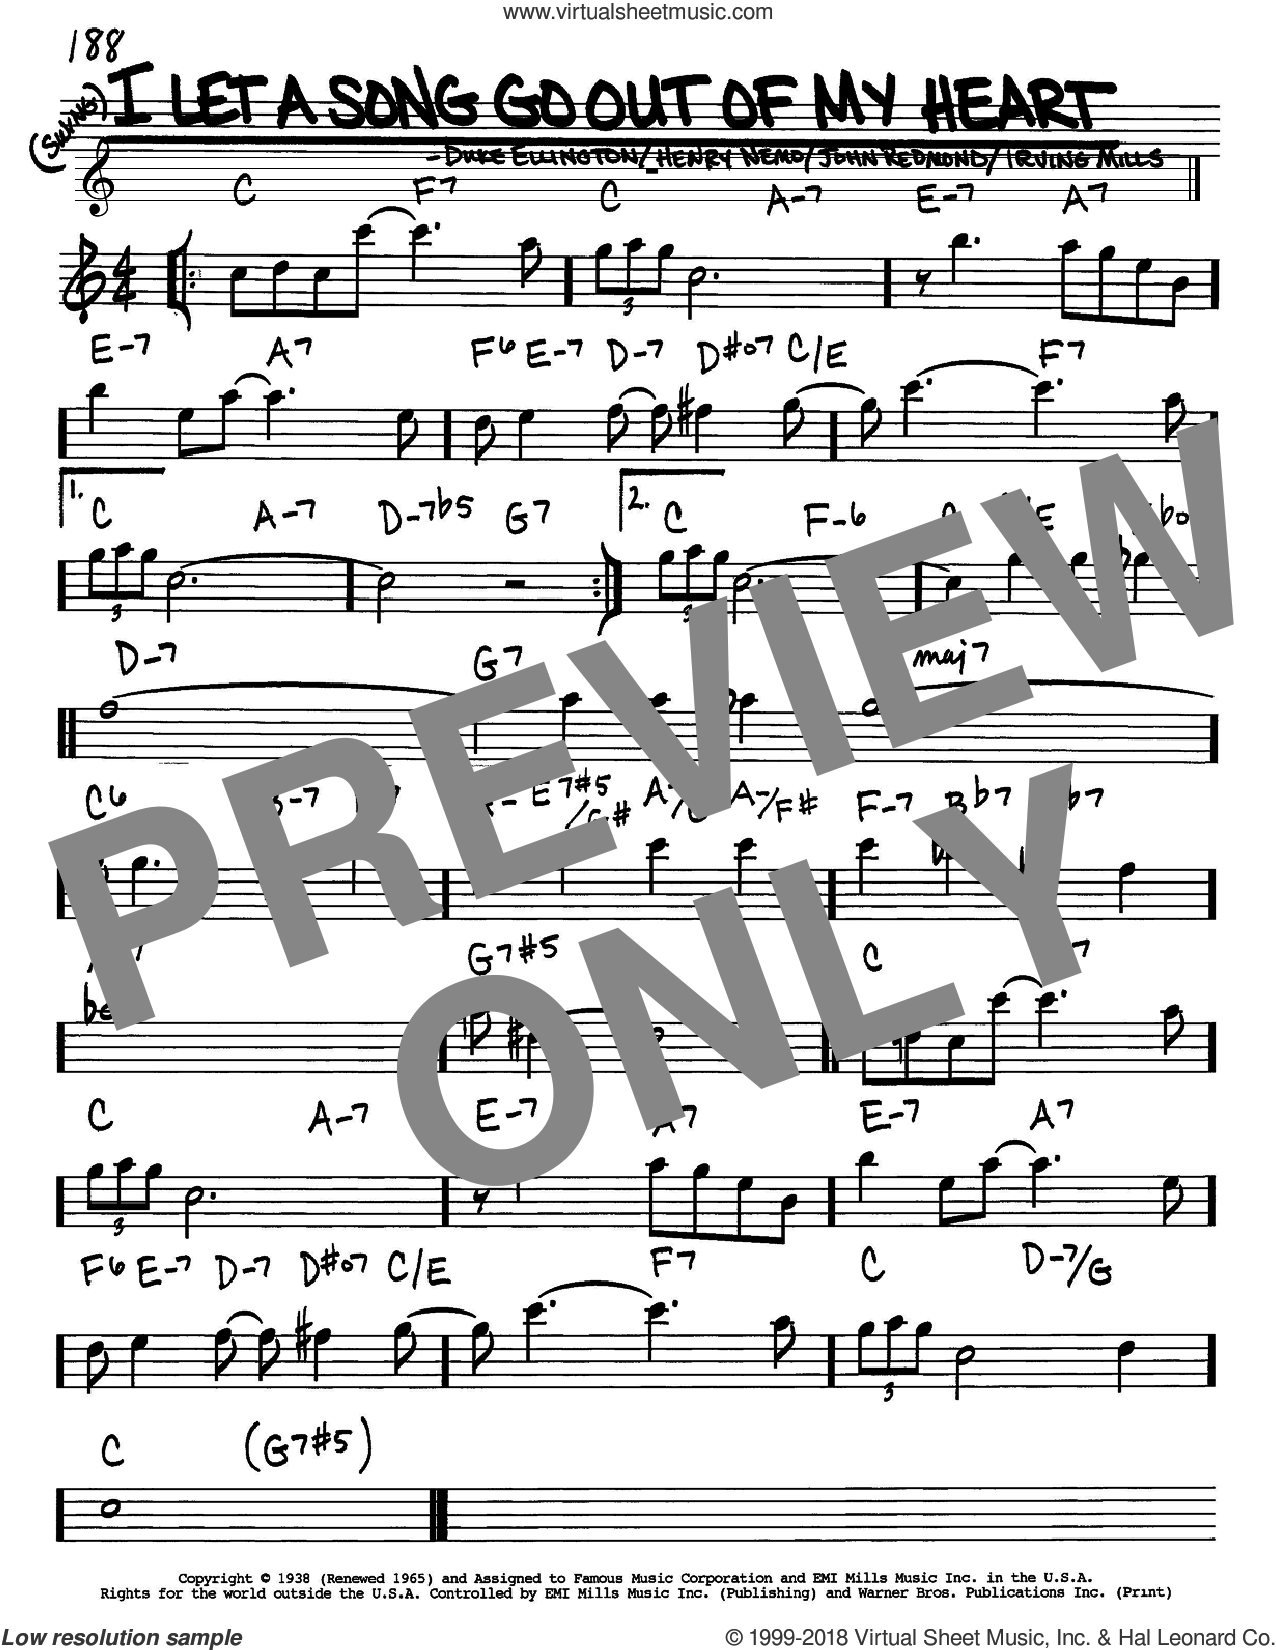 I Let A Song Go Out Of My Heart sheet music for voice and other instruments (Eb) by John Redmond, Duke Ellington, Henry Nemo and Irving Mills. Score Image Preview.